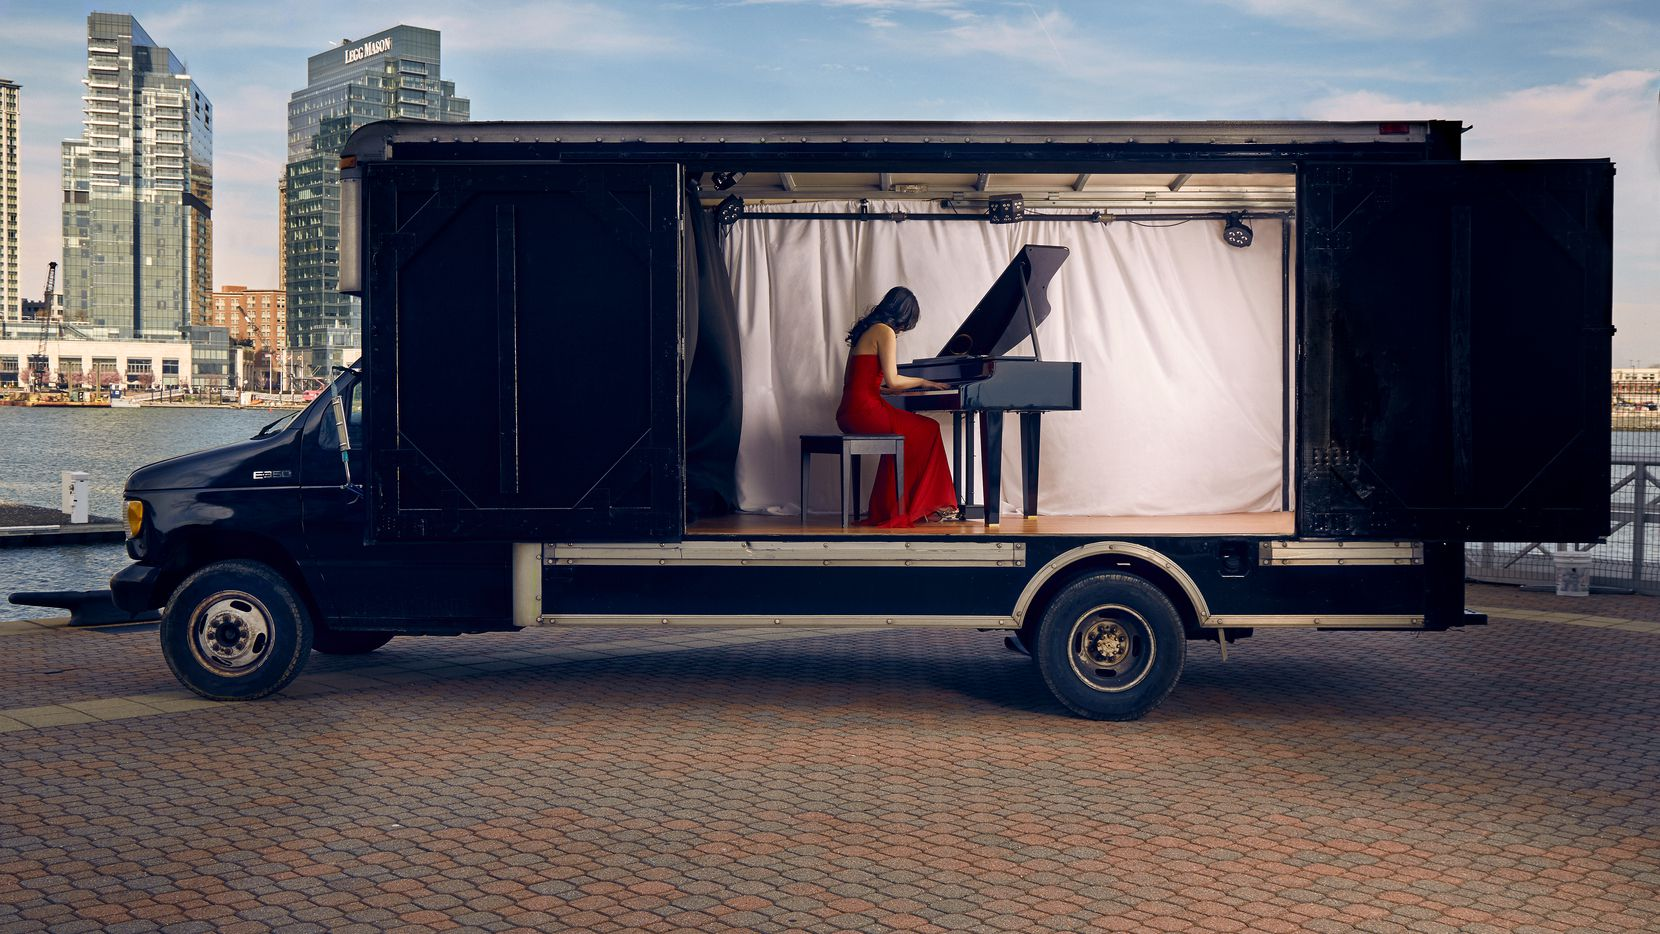 The Concert Truck, founded in 2016 by concert pianists Susan Zhang and Nick Luby, is a mobile concert stage that brings classical chamber music directly to communities.